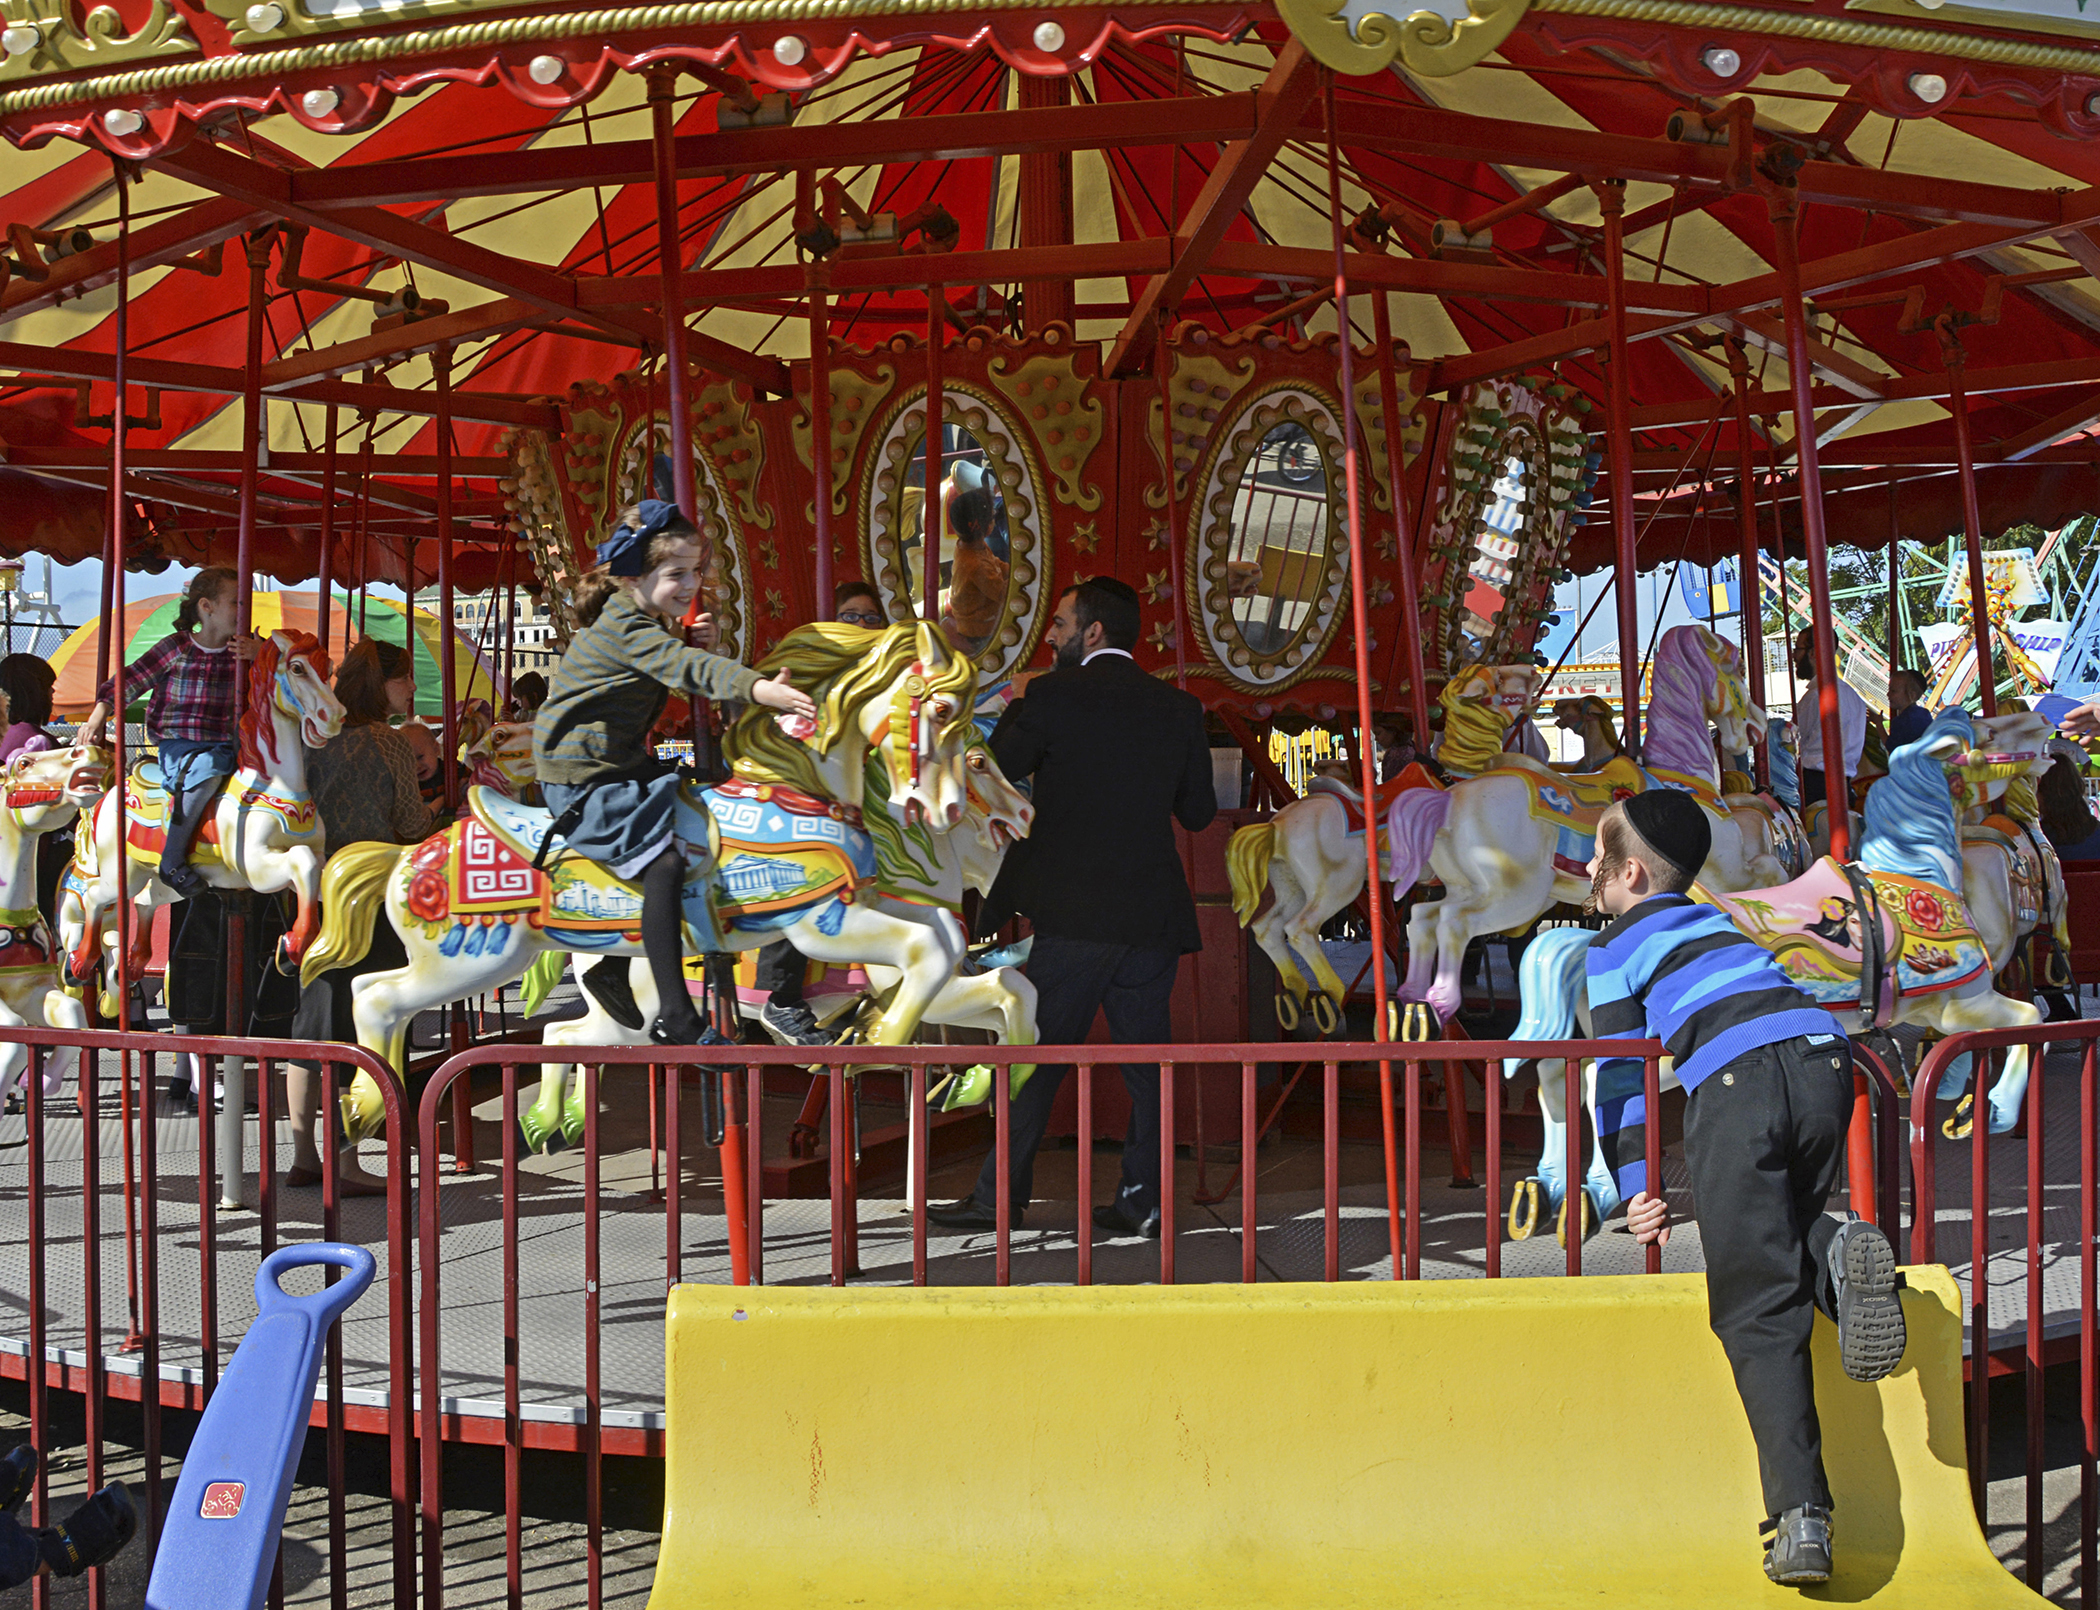 The carousel at Luna Park in Coney Island, Brooklyn, New York